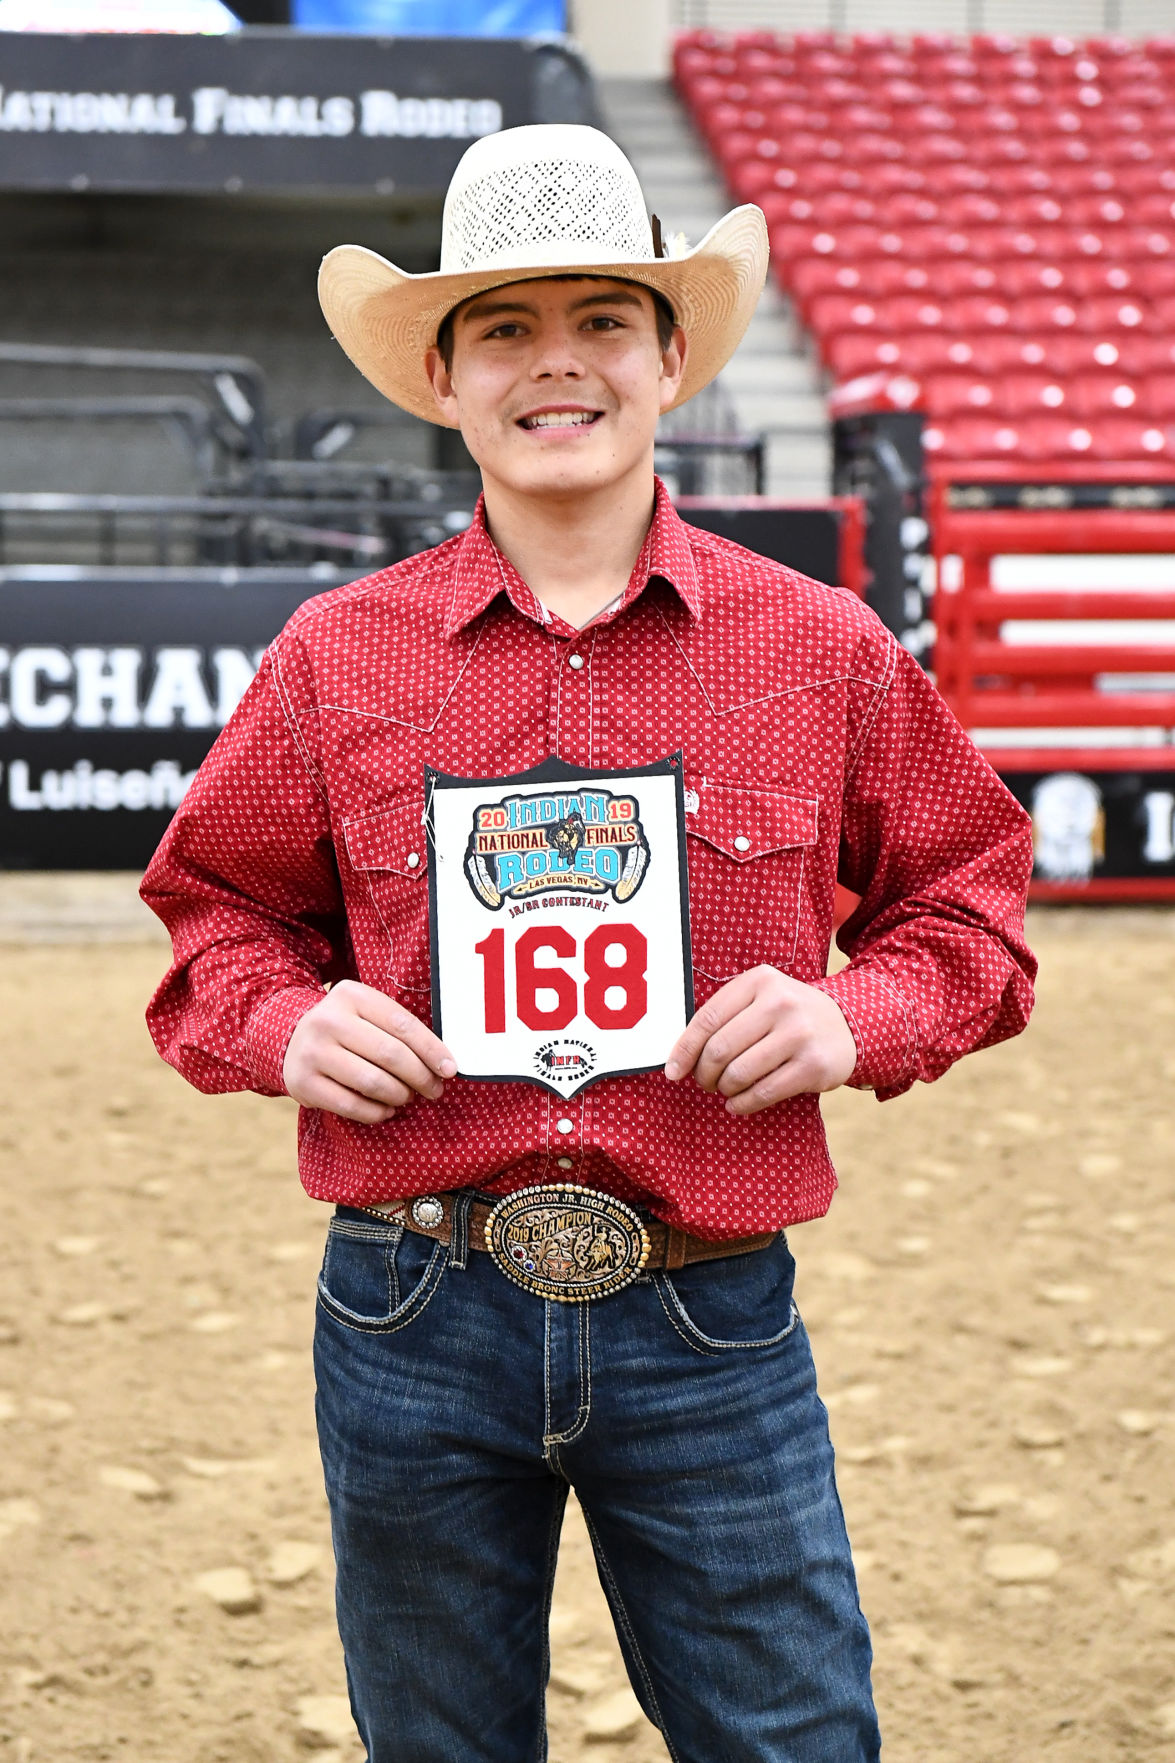 Colville tribal member Bryce Wippel competed in the Jr. bull riding at this year's Indian National Finals Rodeo (Oct. 22-26) at the South Point Equestrian Center in Las Vegas, Nevada. Wippel placed 9th overall with a total average of 60, number of head, one.